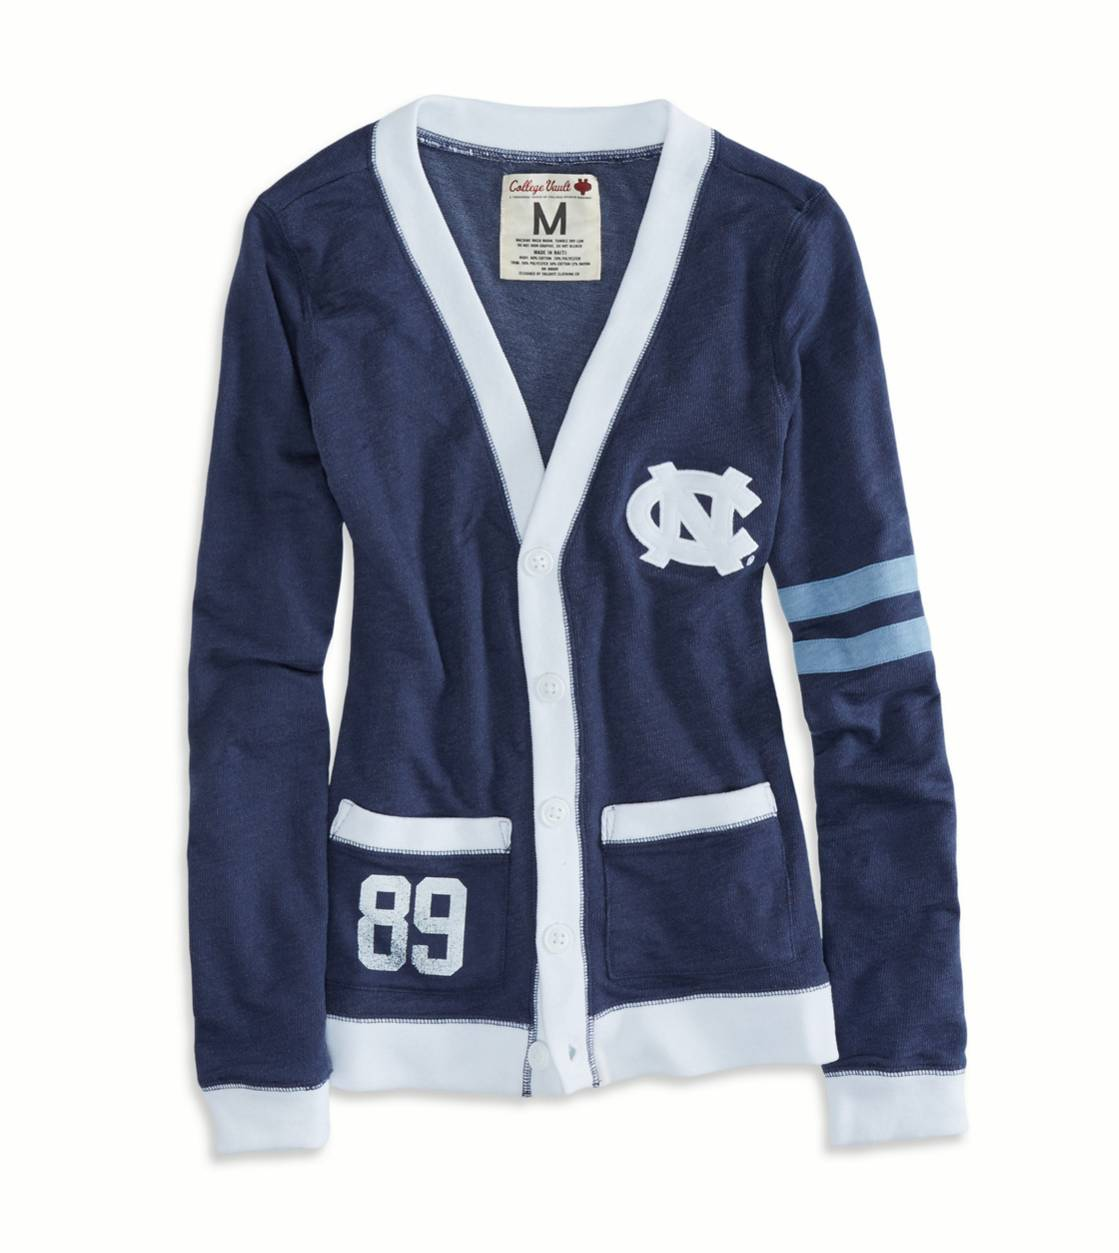 Navy North Carolina Vintage Varsity Cardigan